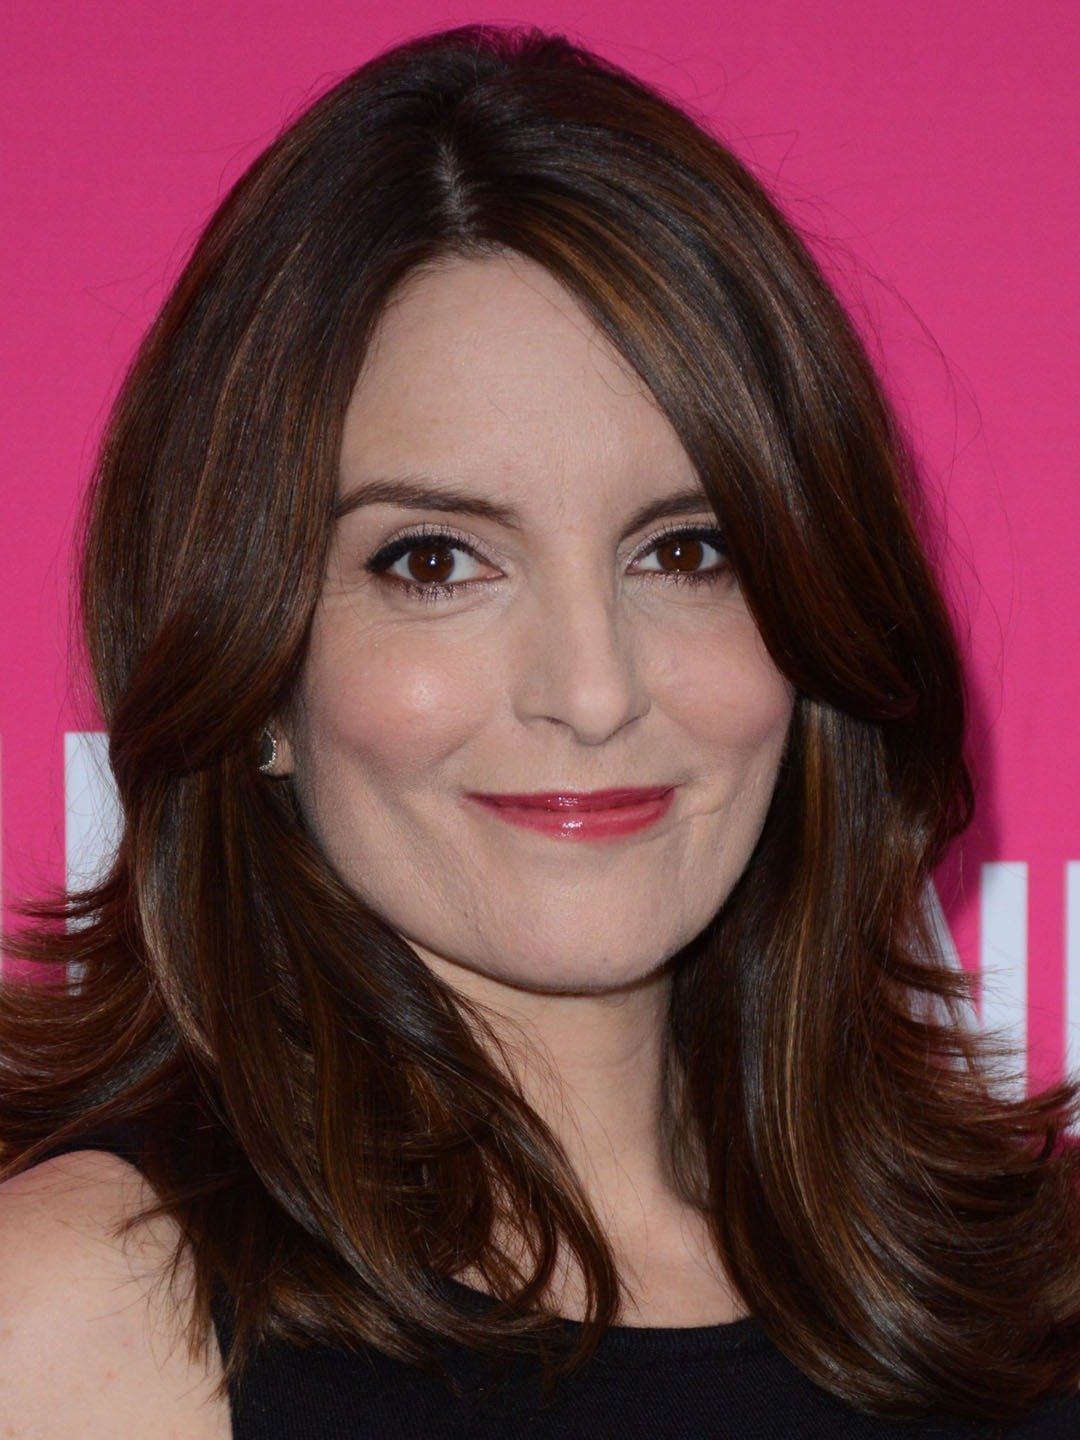 Tina Fey is turning her Mean Girls musical into a movie